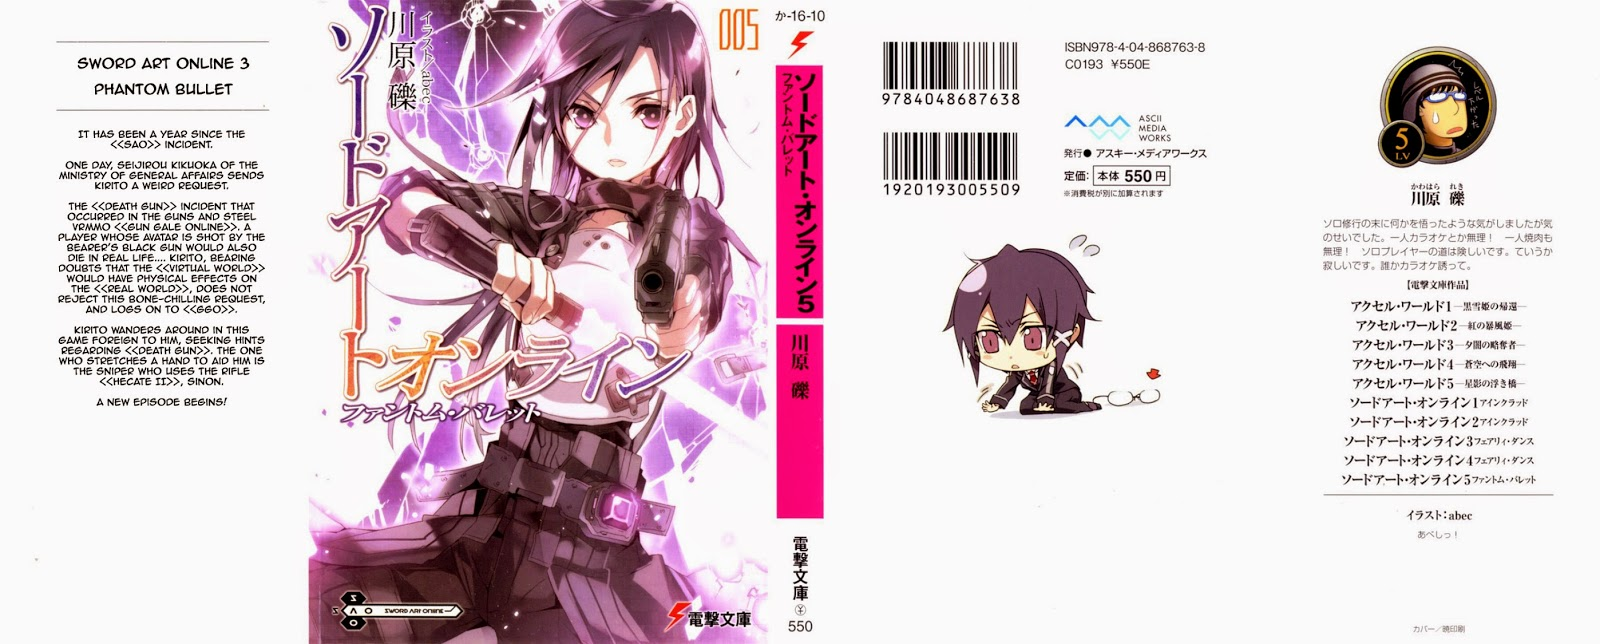 Light Novel Sword Art Online Phantom Bullet